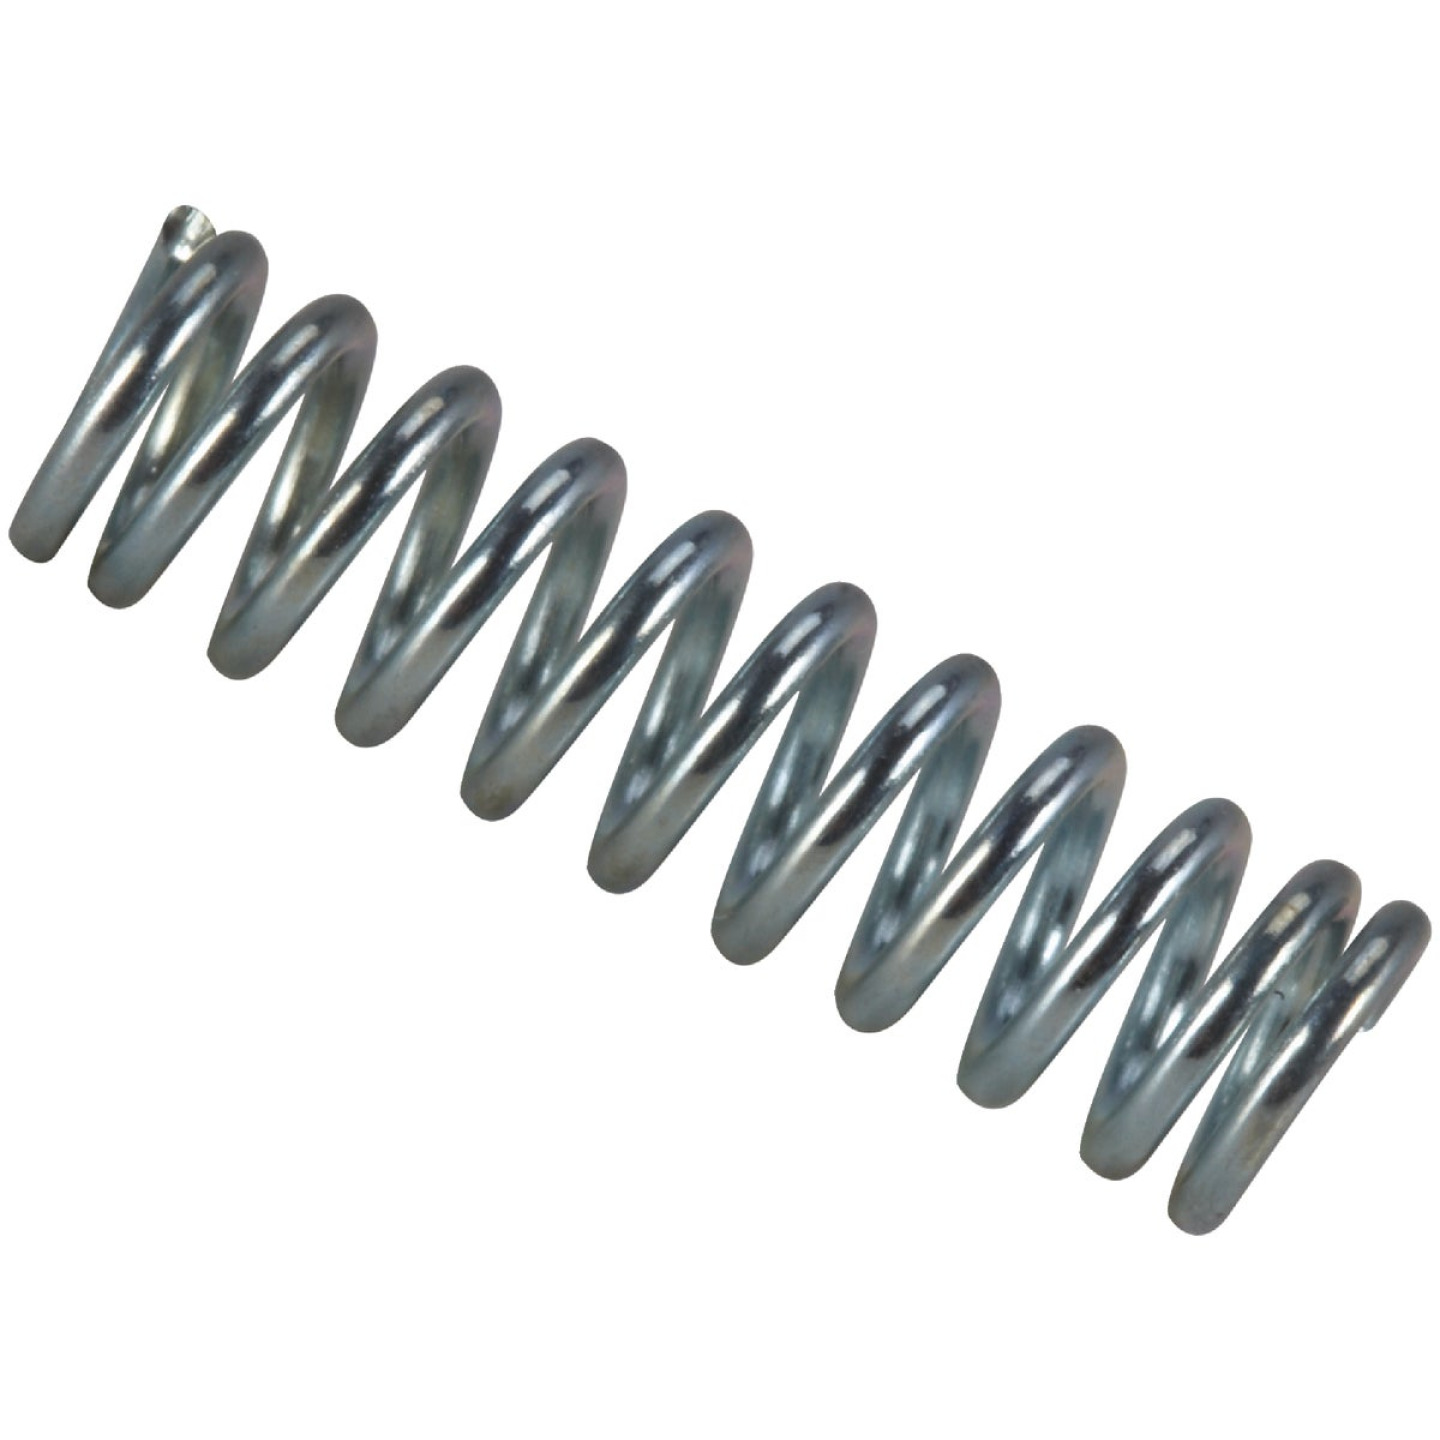 Century Spring 1 In. x 1/4 In. Compression Spring (6 Count) Image 1